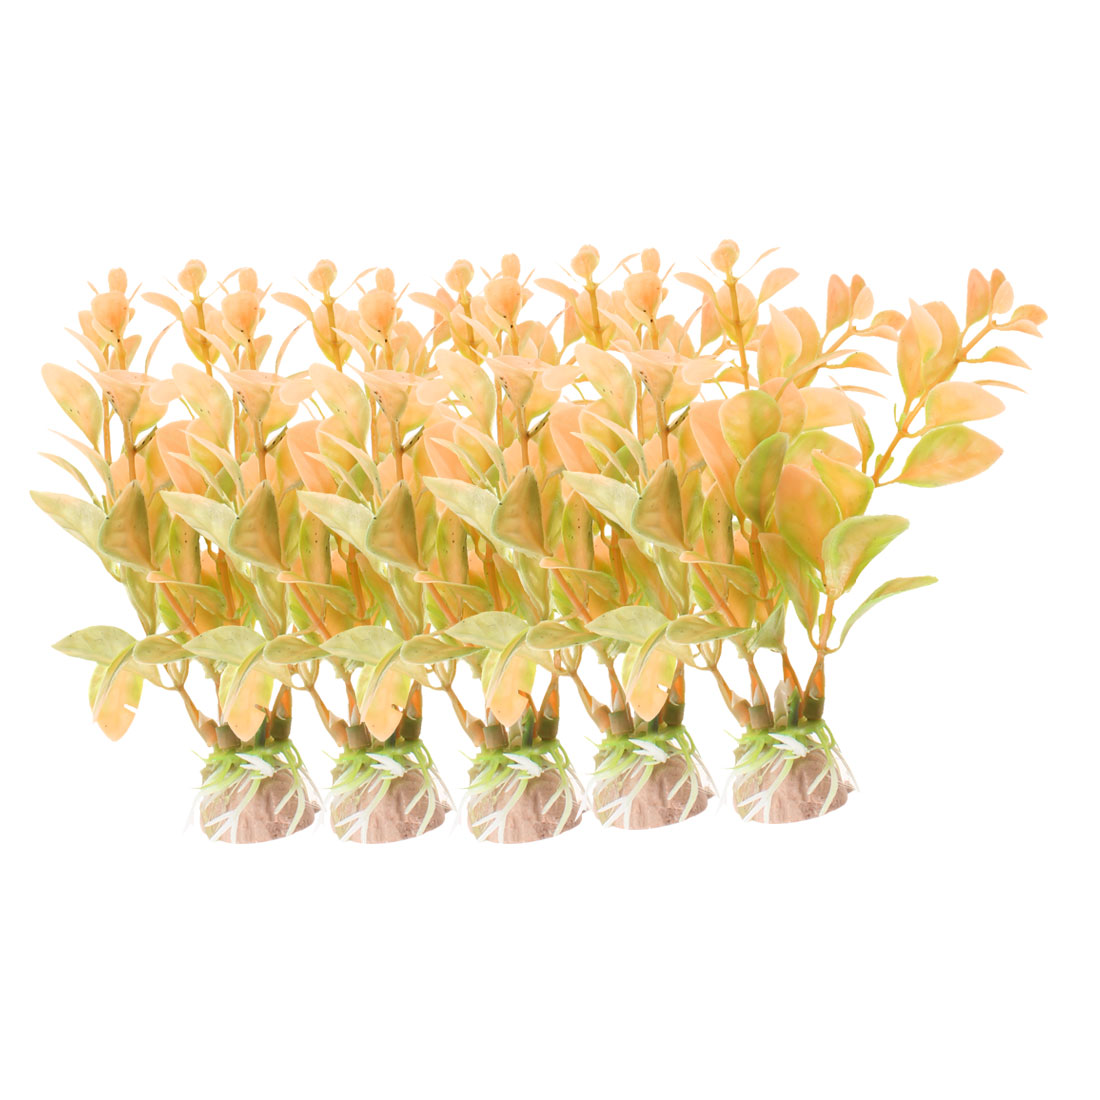 "Fish Tank Aquarium Decoration Apricot Plastic Underwater Plant 4.2"" High 5 Pcs"